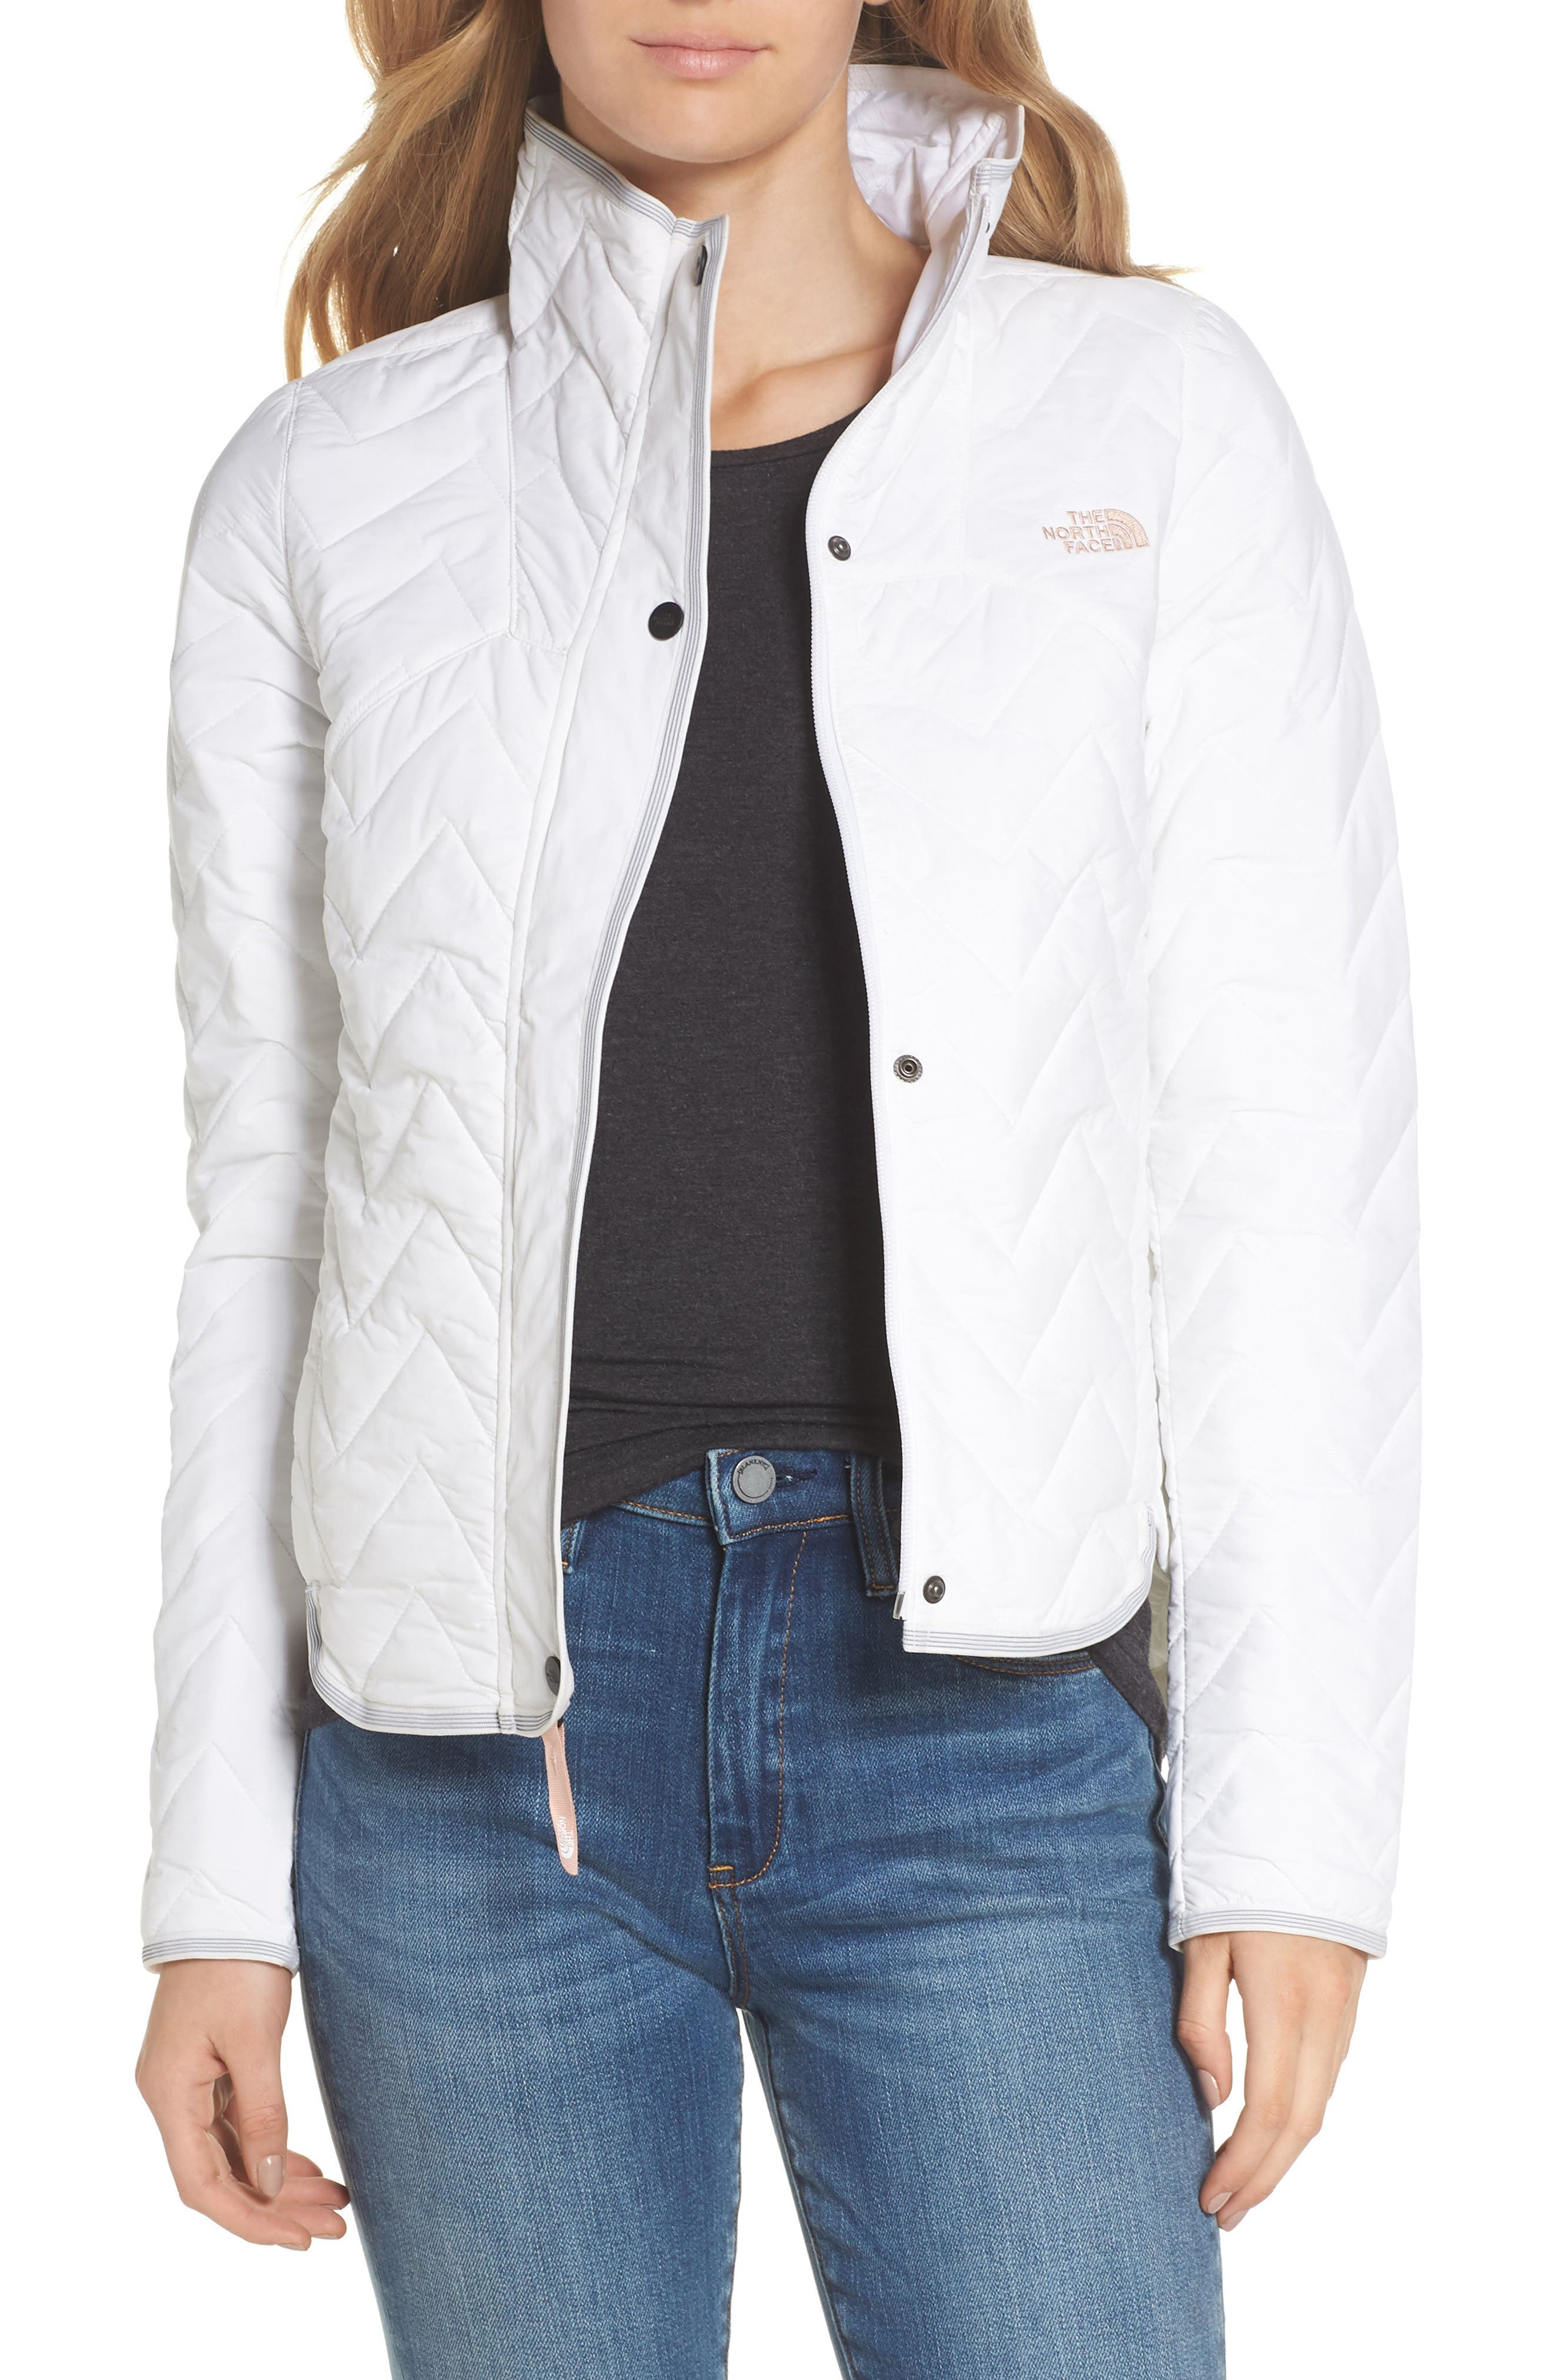 Westborough Insulated Jacket,                             Main thumbnail 1, color,                             BRIGHT WHITE